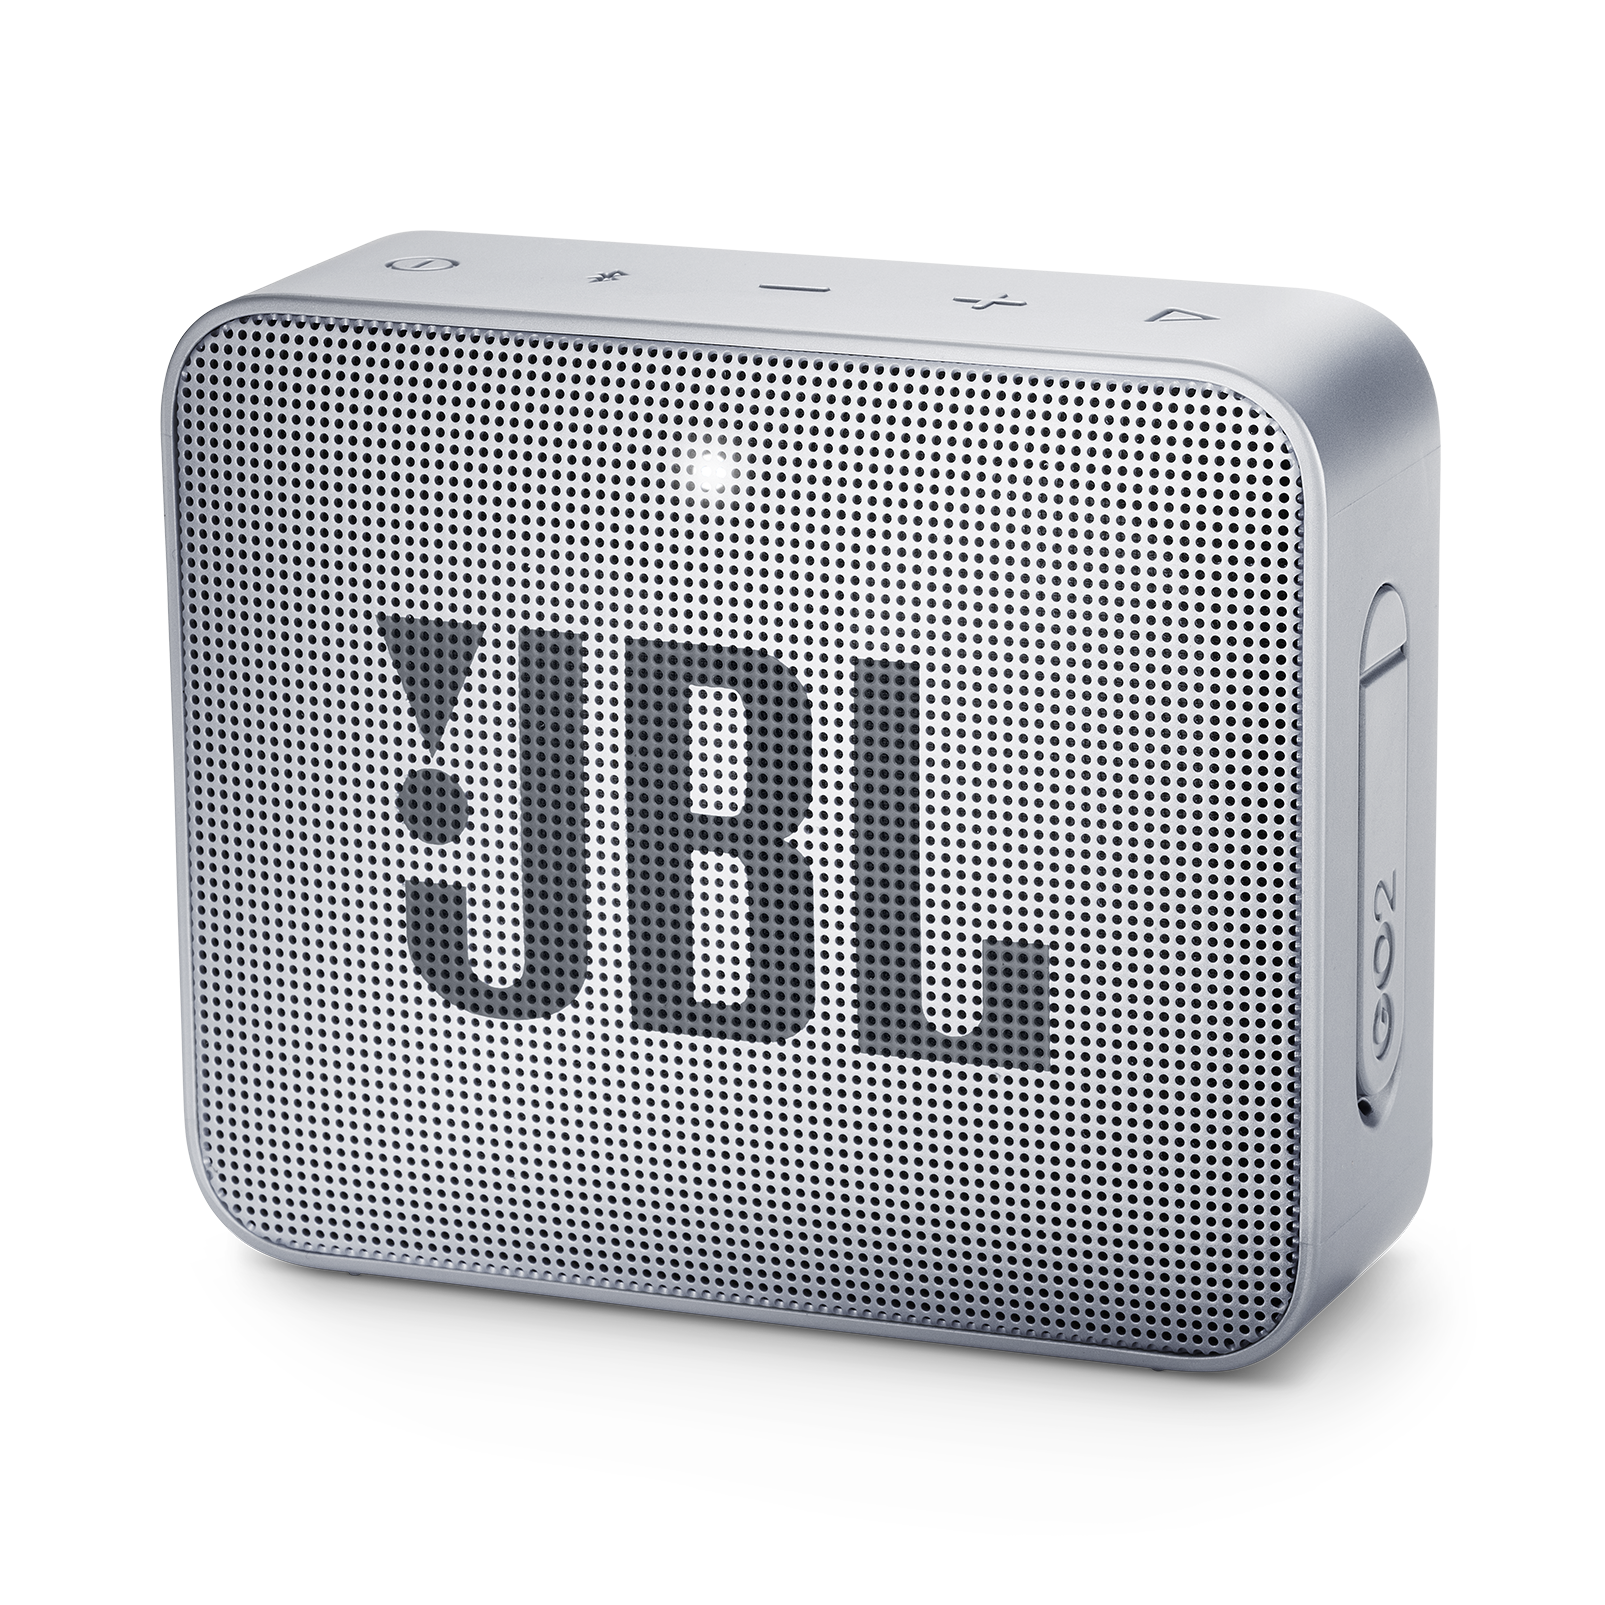 JBL GO 2 - Ash Gray - Portable Bluetooth speaker - Hero